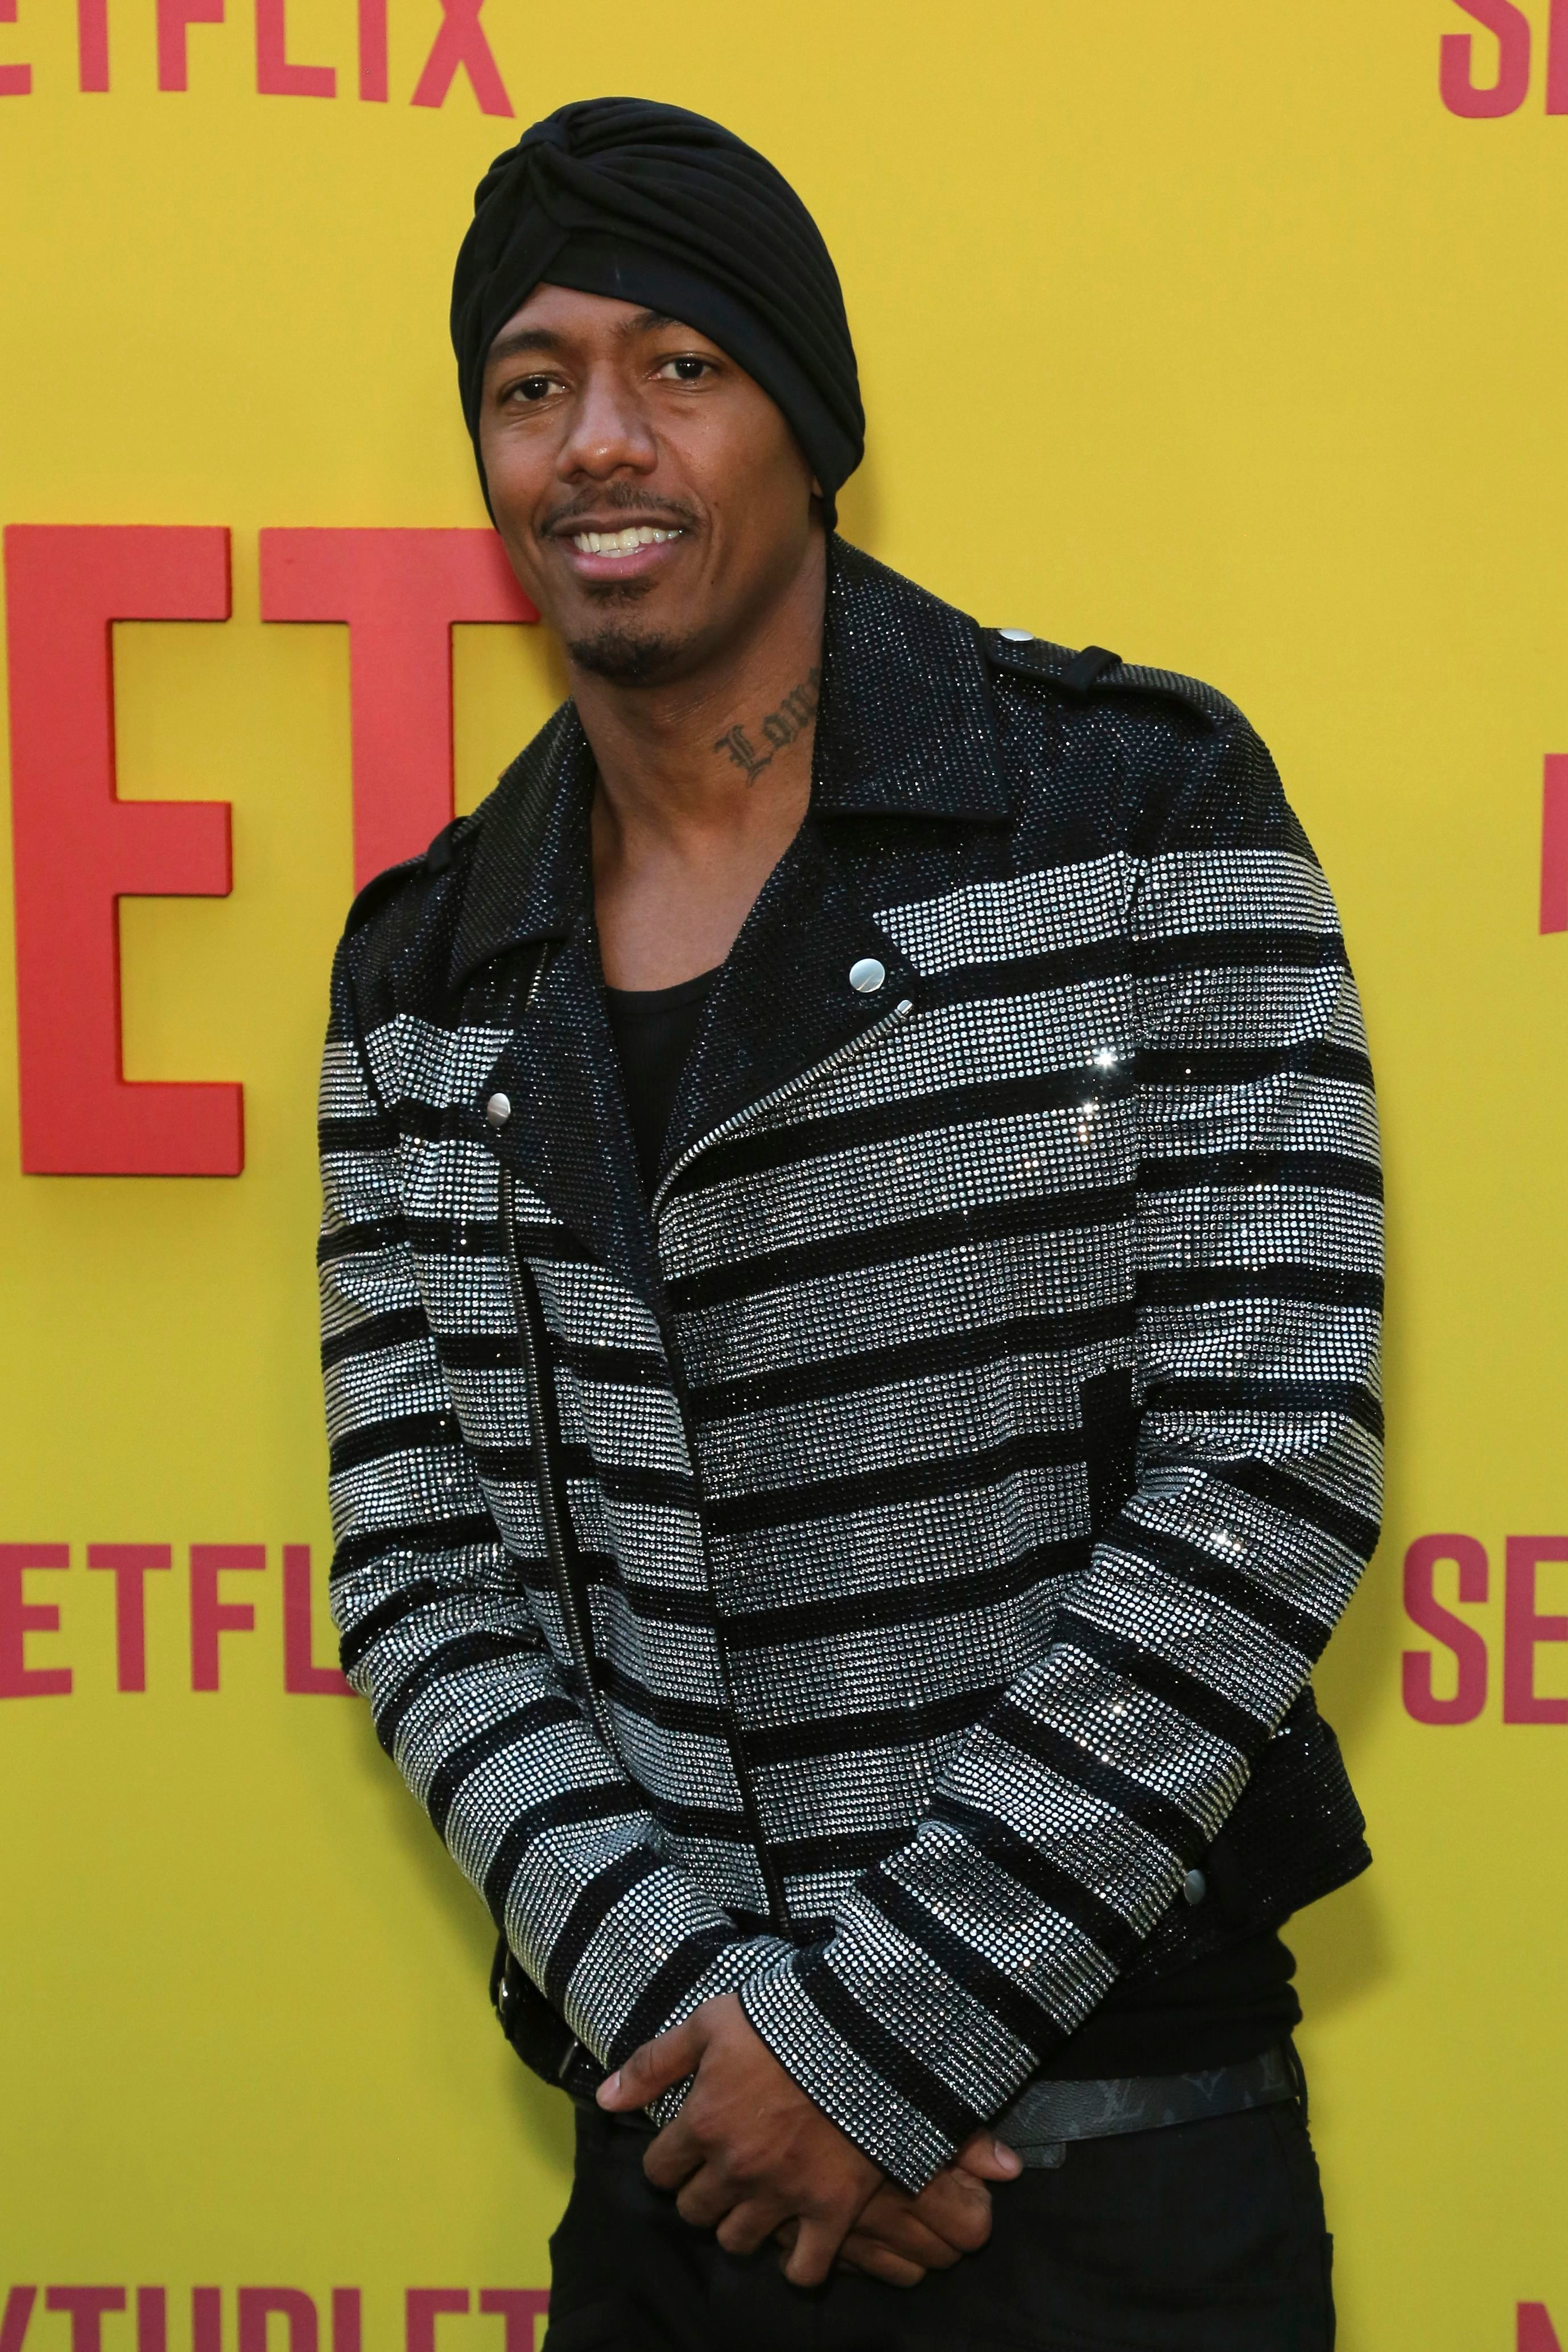 """Nick Cannon attends the premiere of """"Sextuplets"""" at the Arclight Hollywood in Los Angeles on Aug. 7, 2019."""